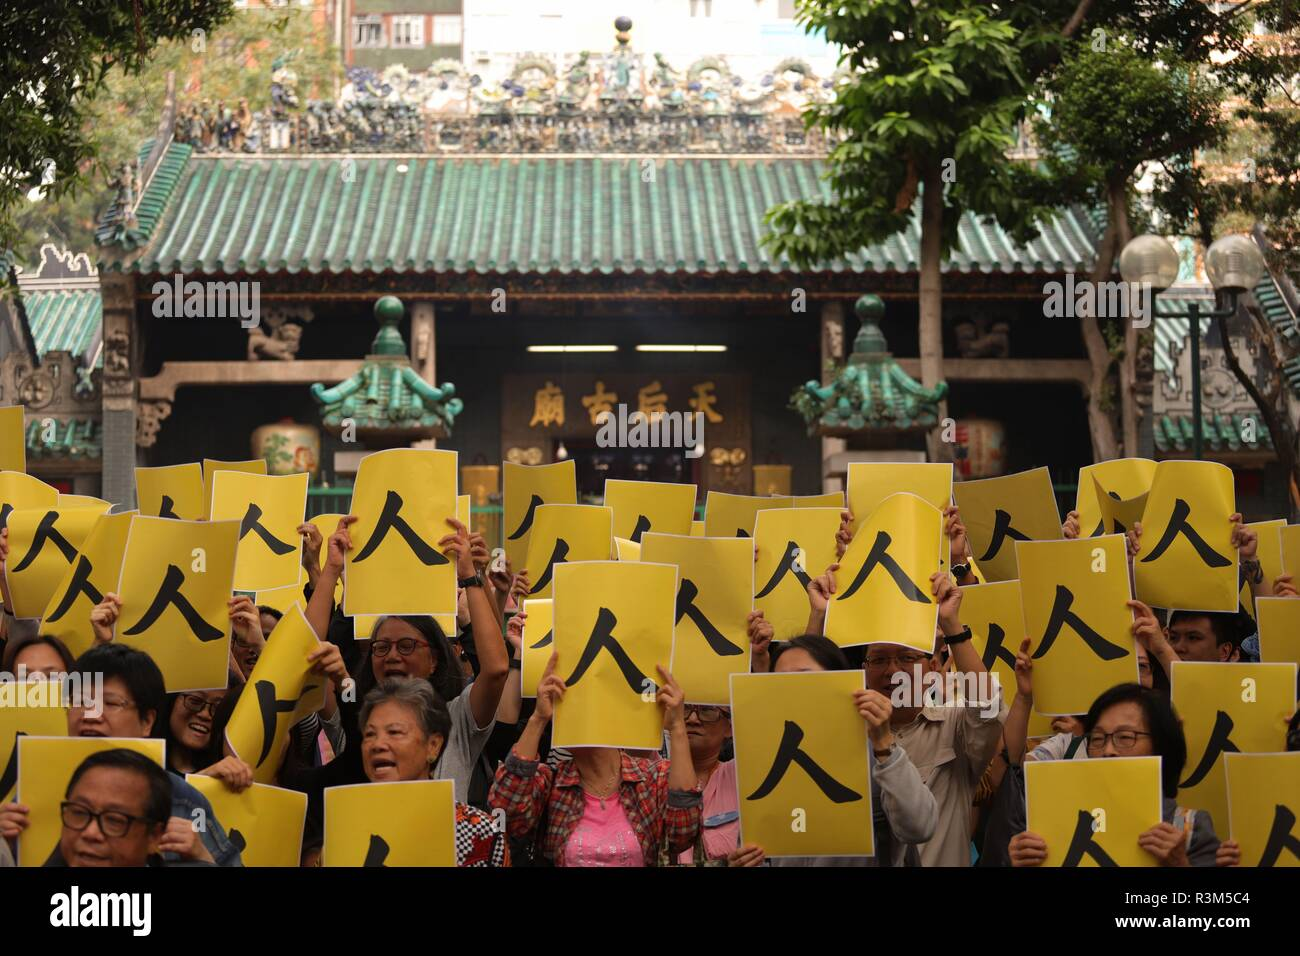 Hong Kong, CHINA. 24th Nov, 2018. Supporters of pro-democracy candidate No.3 Lee Cheuk-yan display placards in front of ancient Chinese Temple that reads REN ( pronounced 'Yan' in Cantonese ) which is a last character of Lee's given name. HKSAR will hold 2018 Legislative Council Kowloon West Geographical Constituency By-Election tomorrow.Nov-24, 2018 Hong Kong.ZUMA/Liau Chung-ren Credit: Liau Chung-ren/ZUMA Wire/Alamy Live News - Stock Image